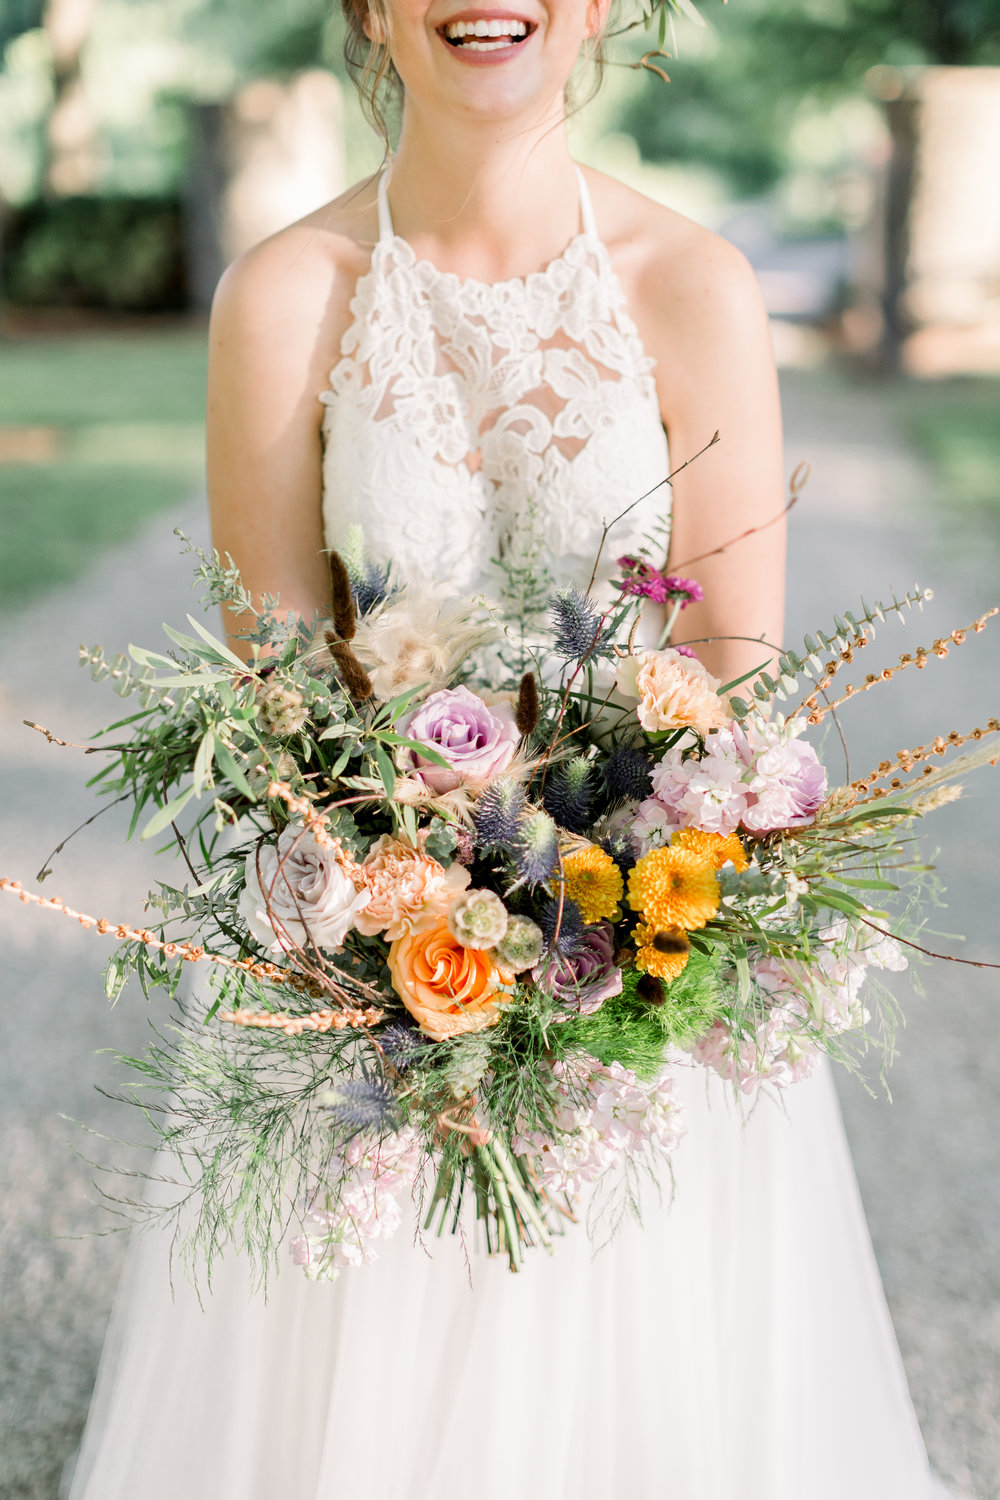 kc wedding florist